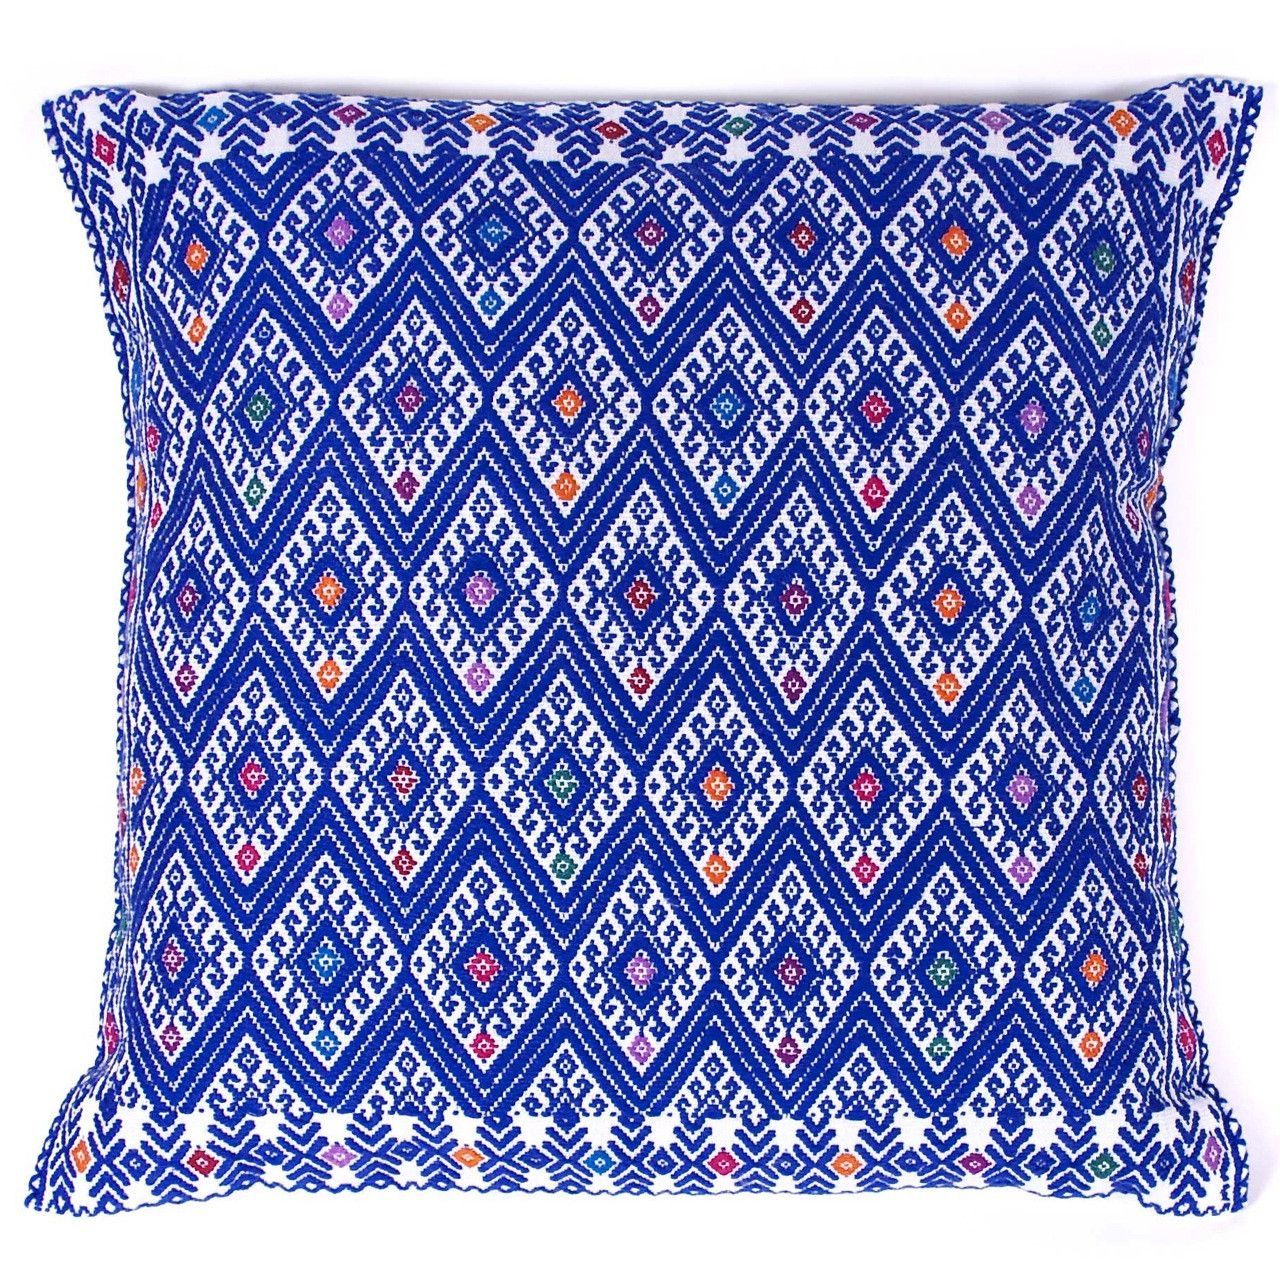 Hand-Embroidered Azure Pillow From Chiapas